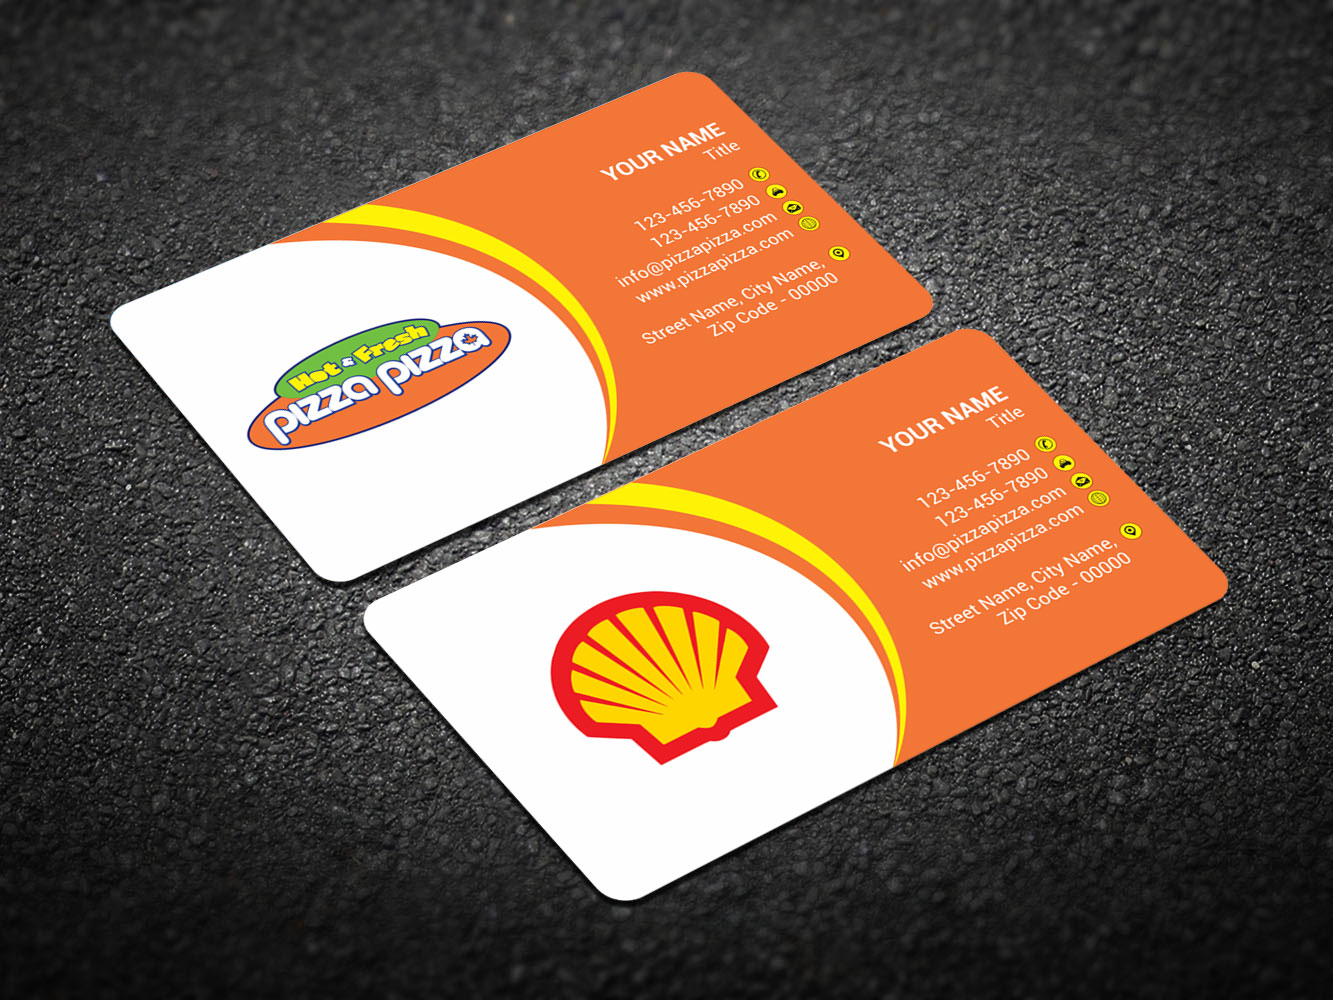 business card design by madhuraminfotech for shell gas station design 14105448 - Shell Business Gas Card